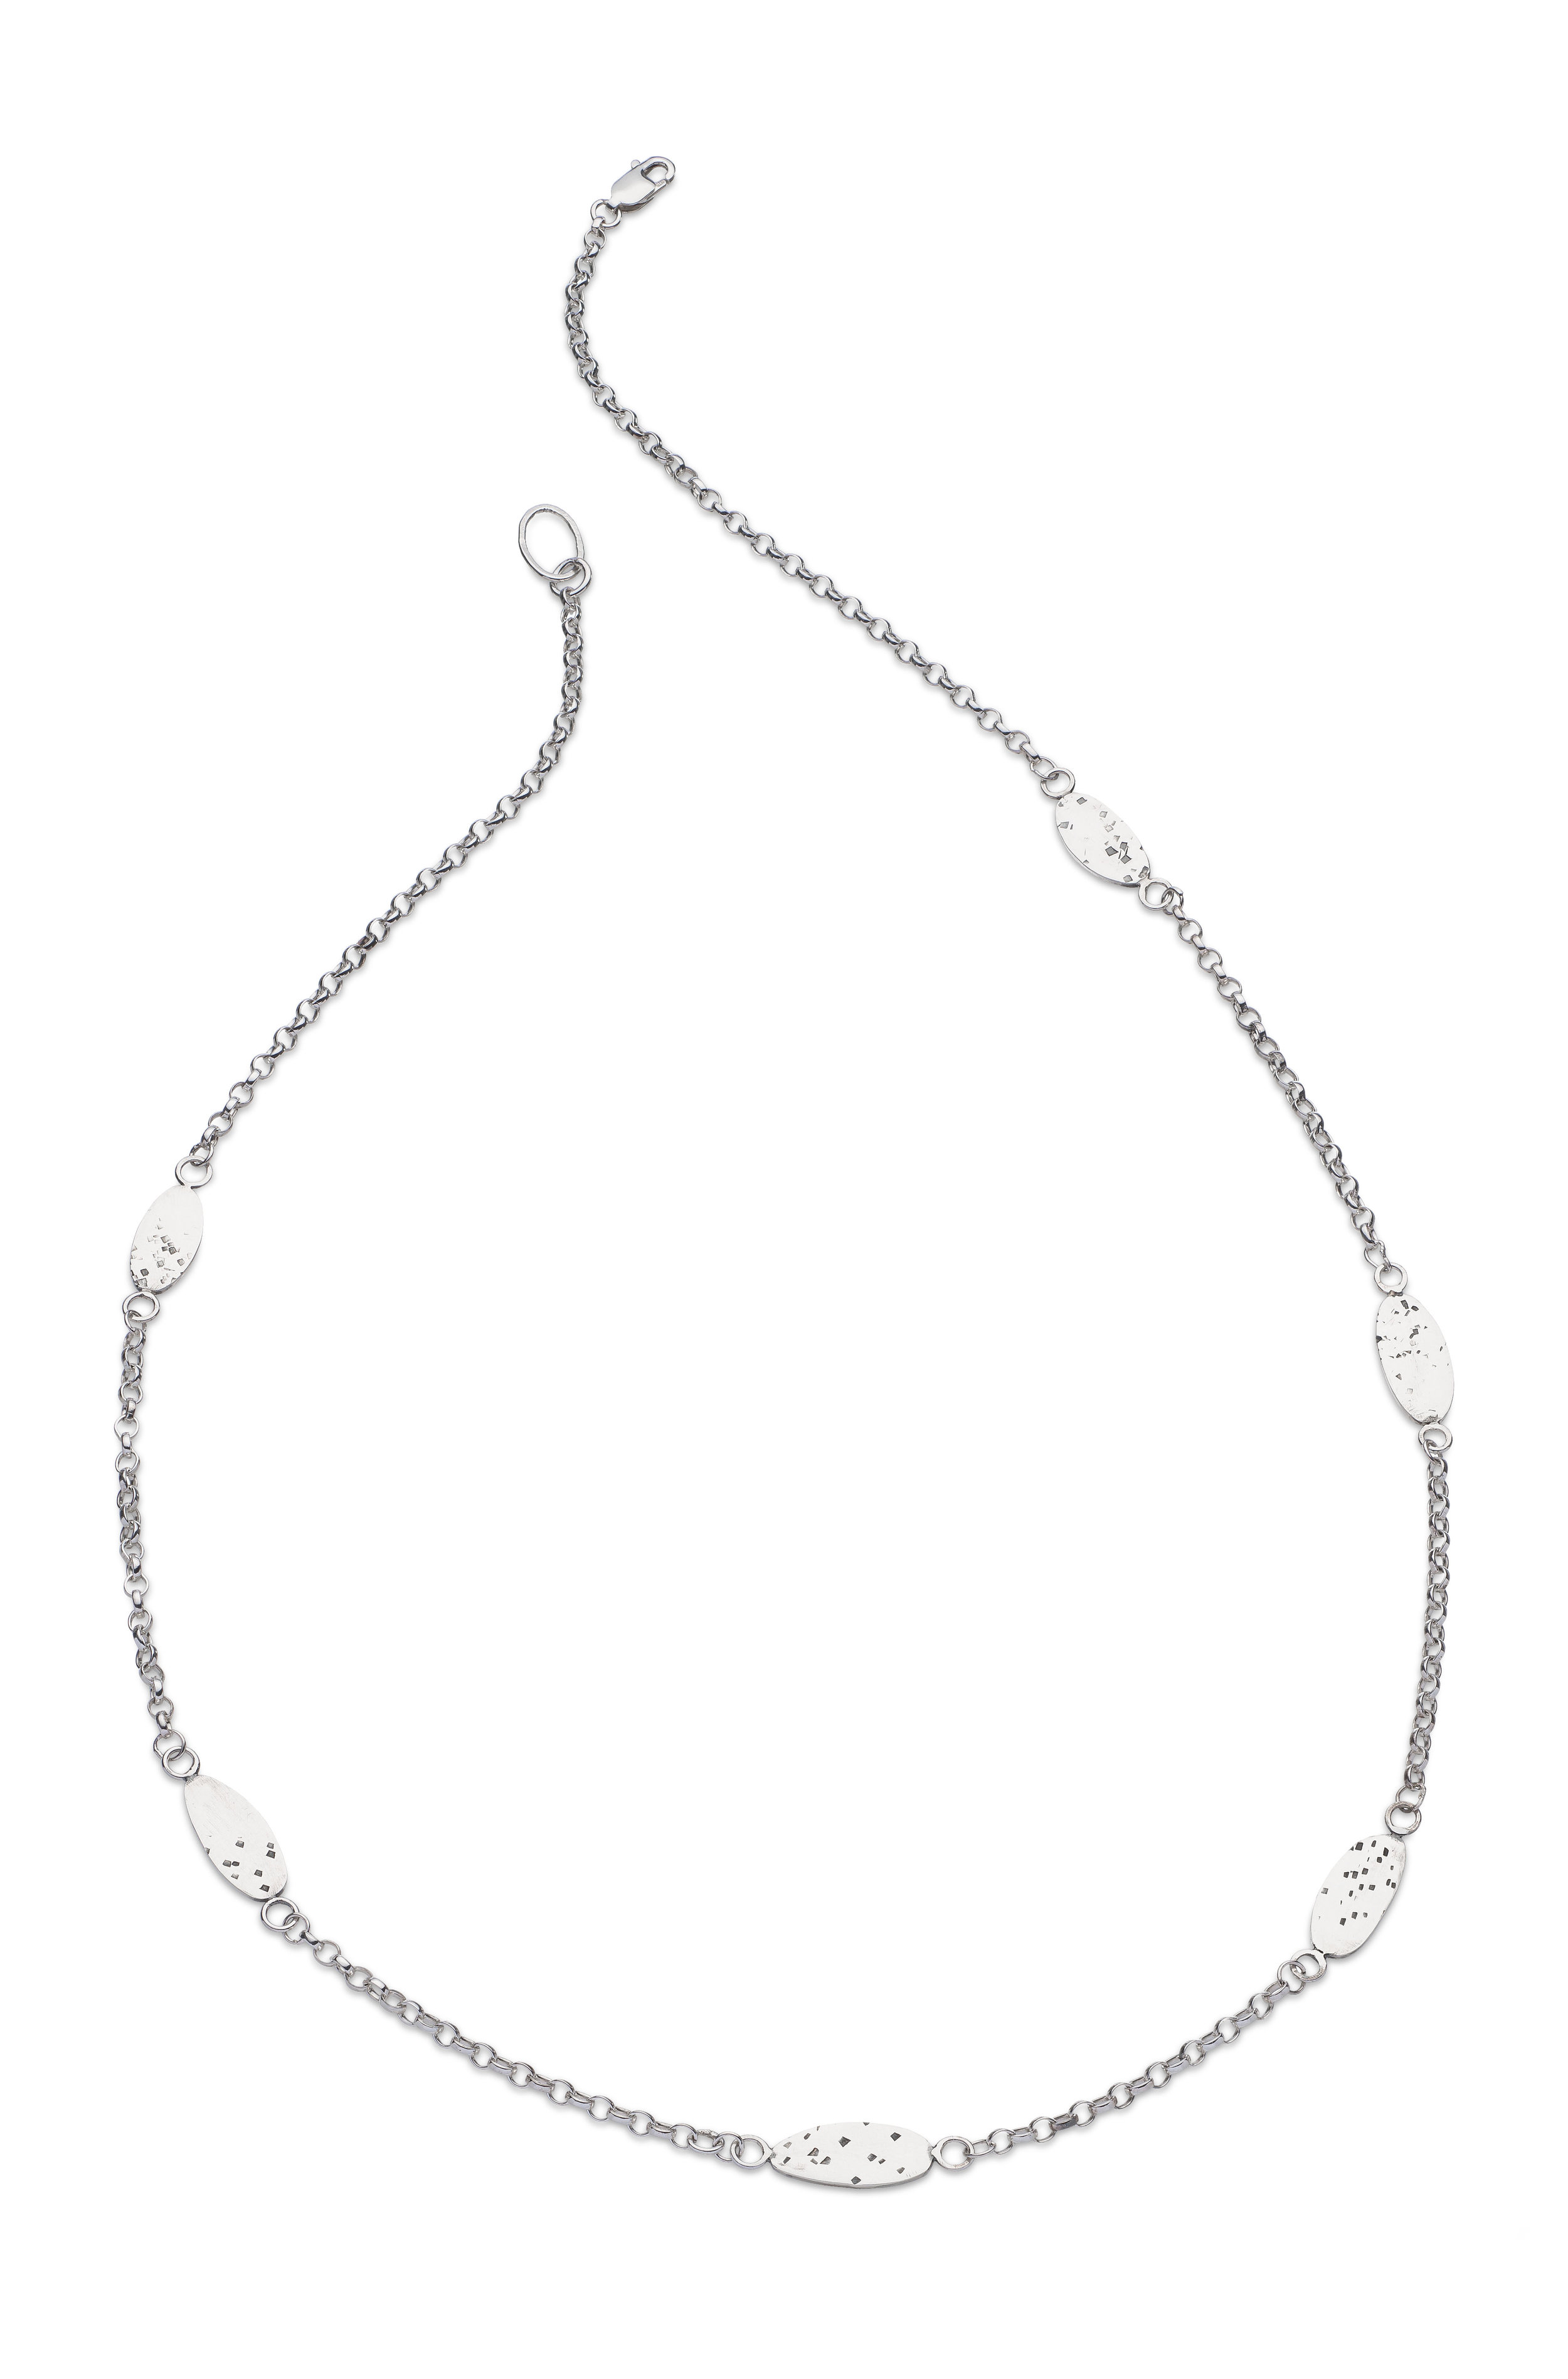 Sterling silver 20inch chain necklace with six freckled ovals. from£170